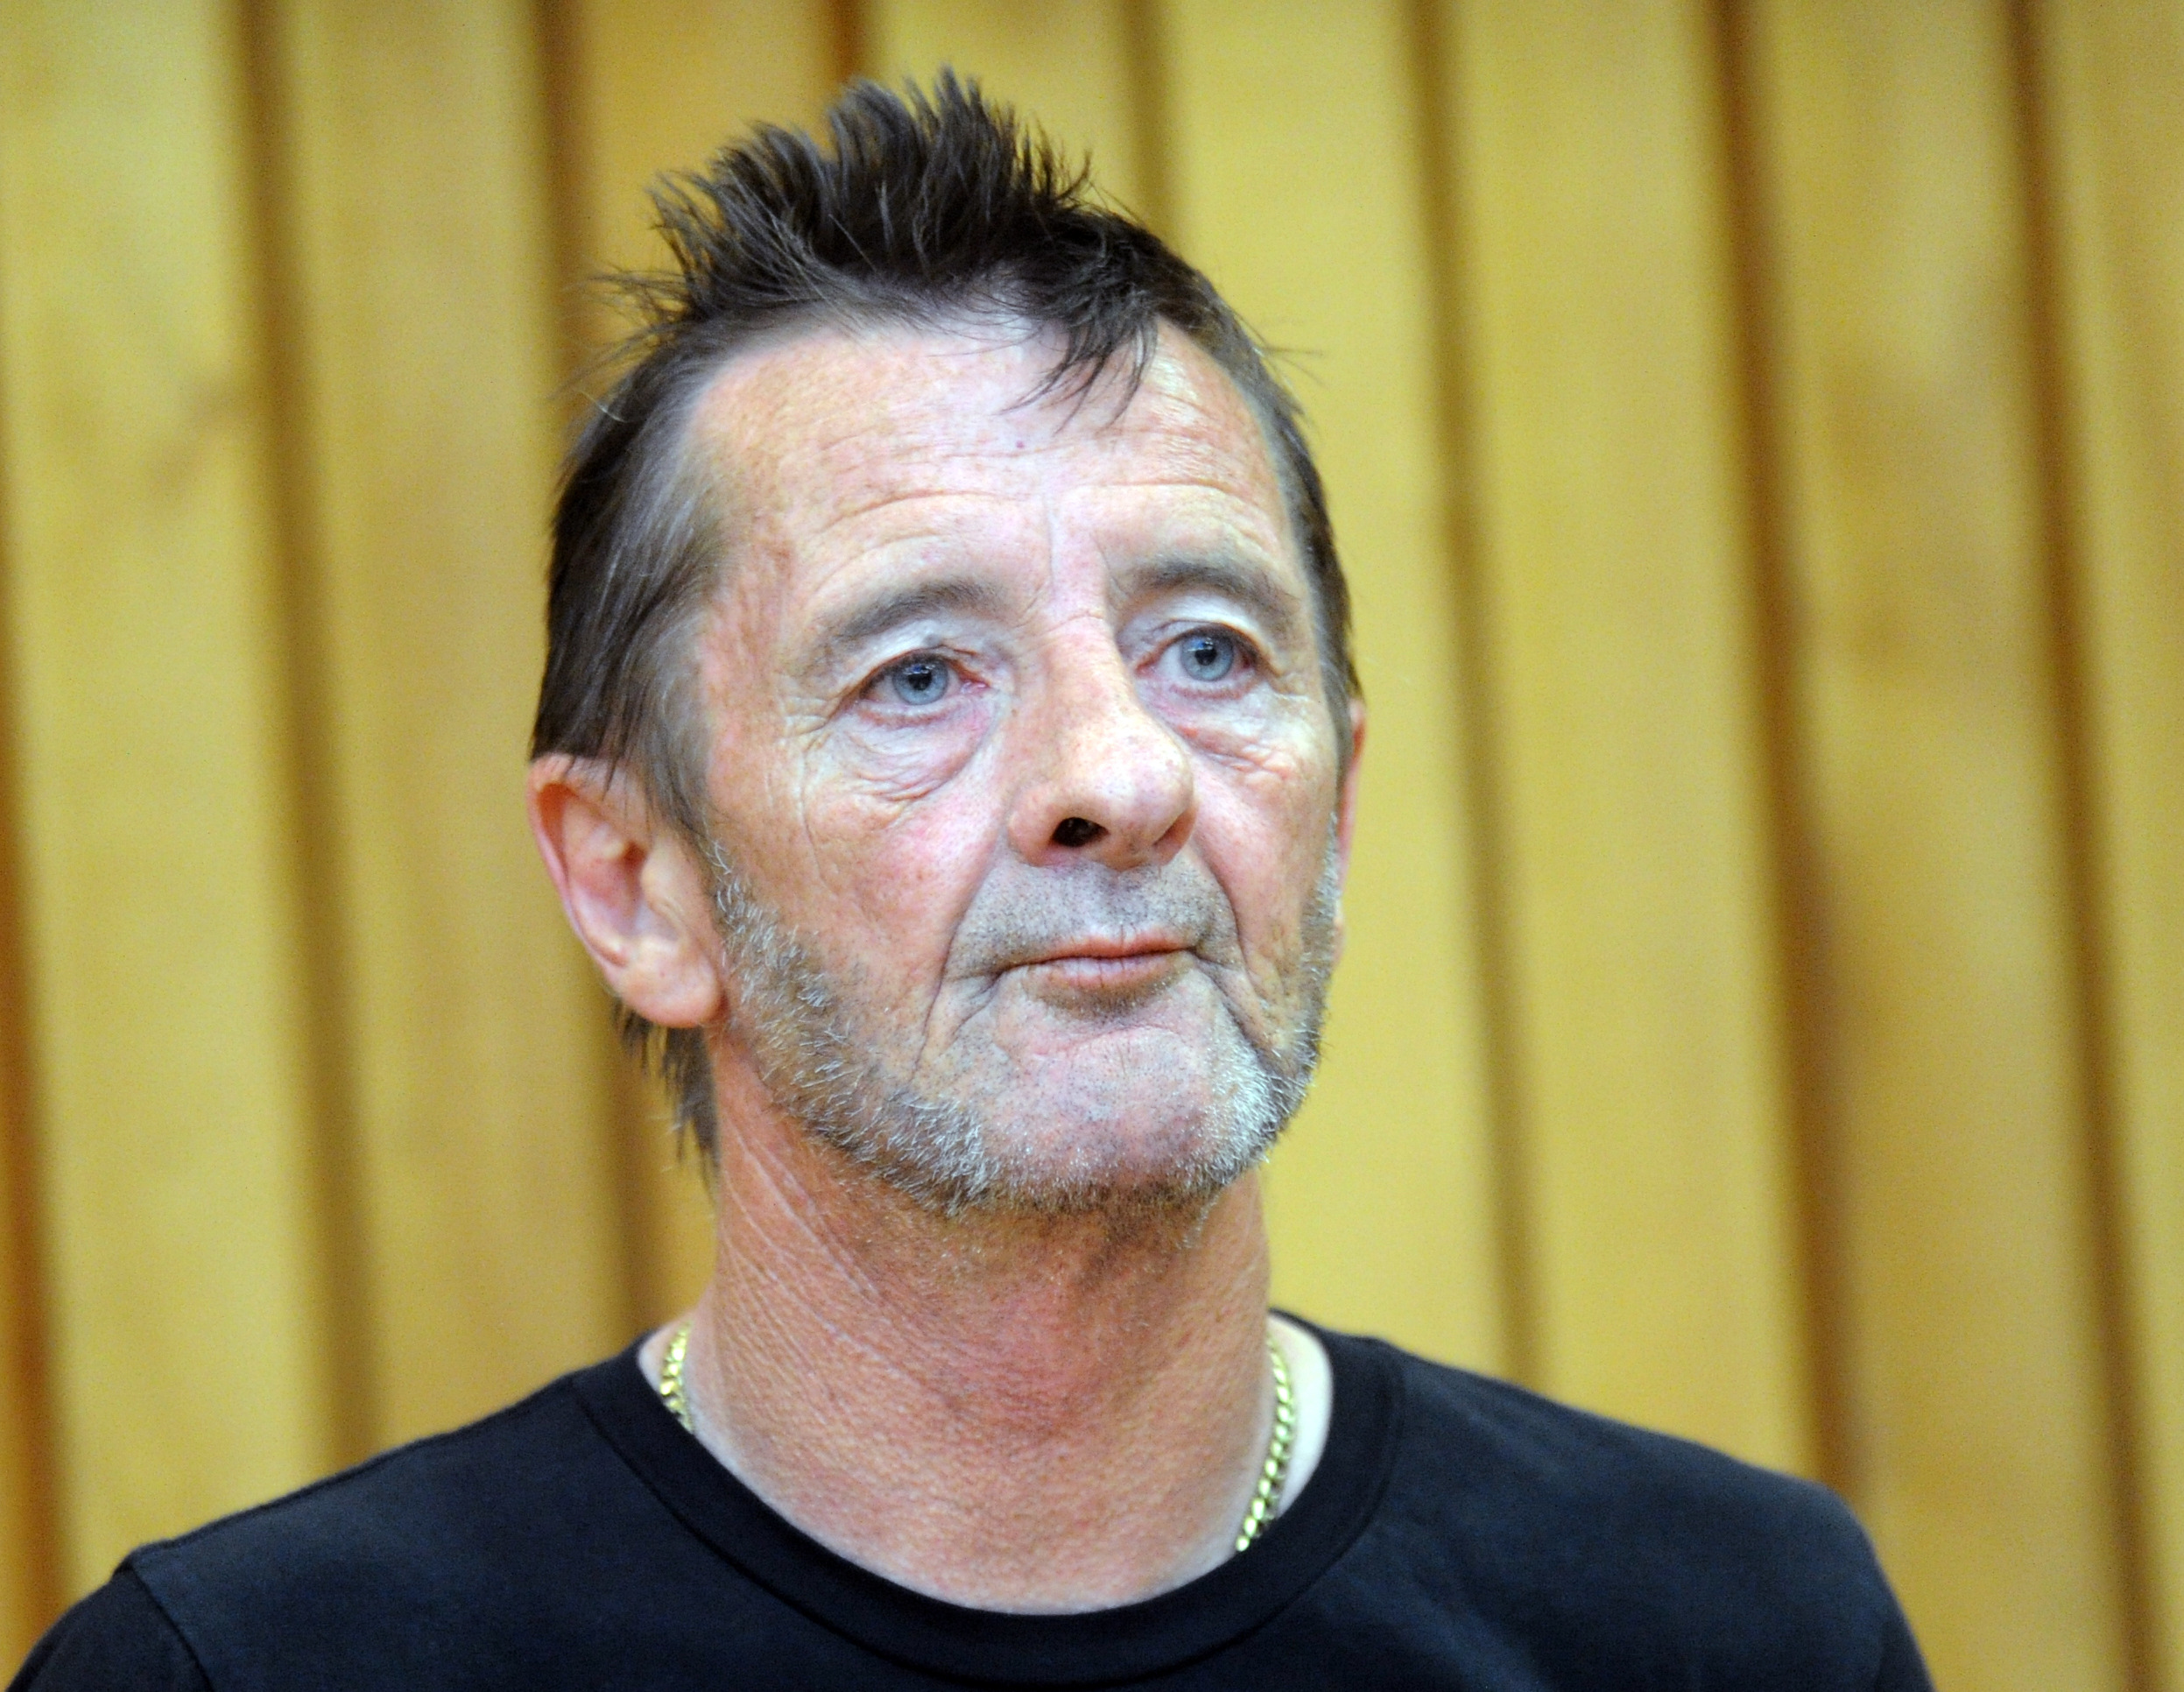 Phil Rudd appears at the High Court for charges of drug posession and threatening to kill, at the District Court in Tauranga, New Zealand, on Nov. 26, 2014